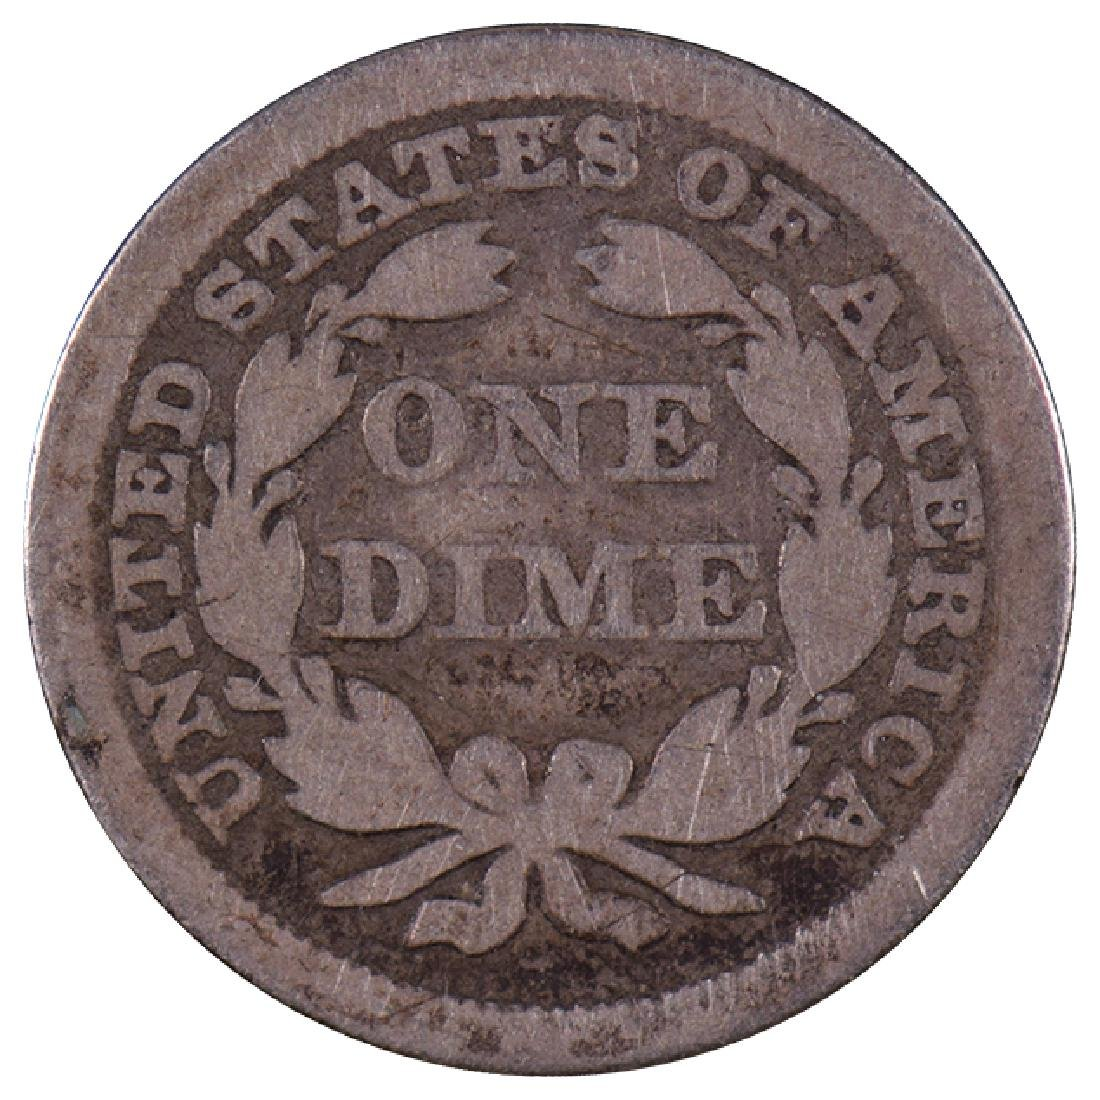 1844 Seated Liberty Dime Coin - 2